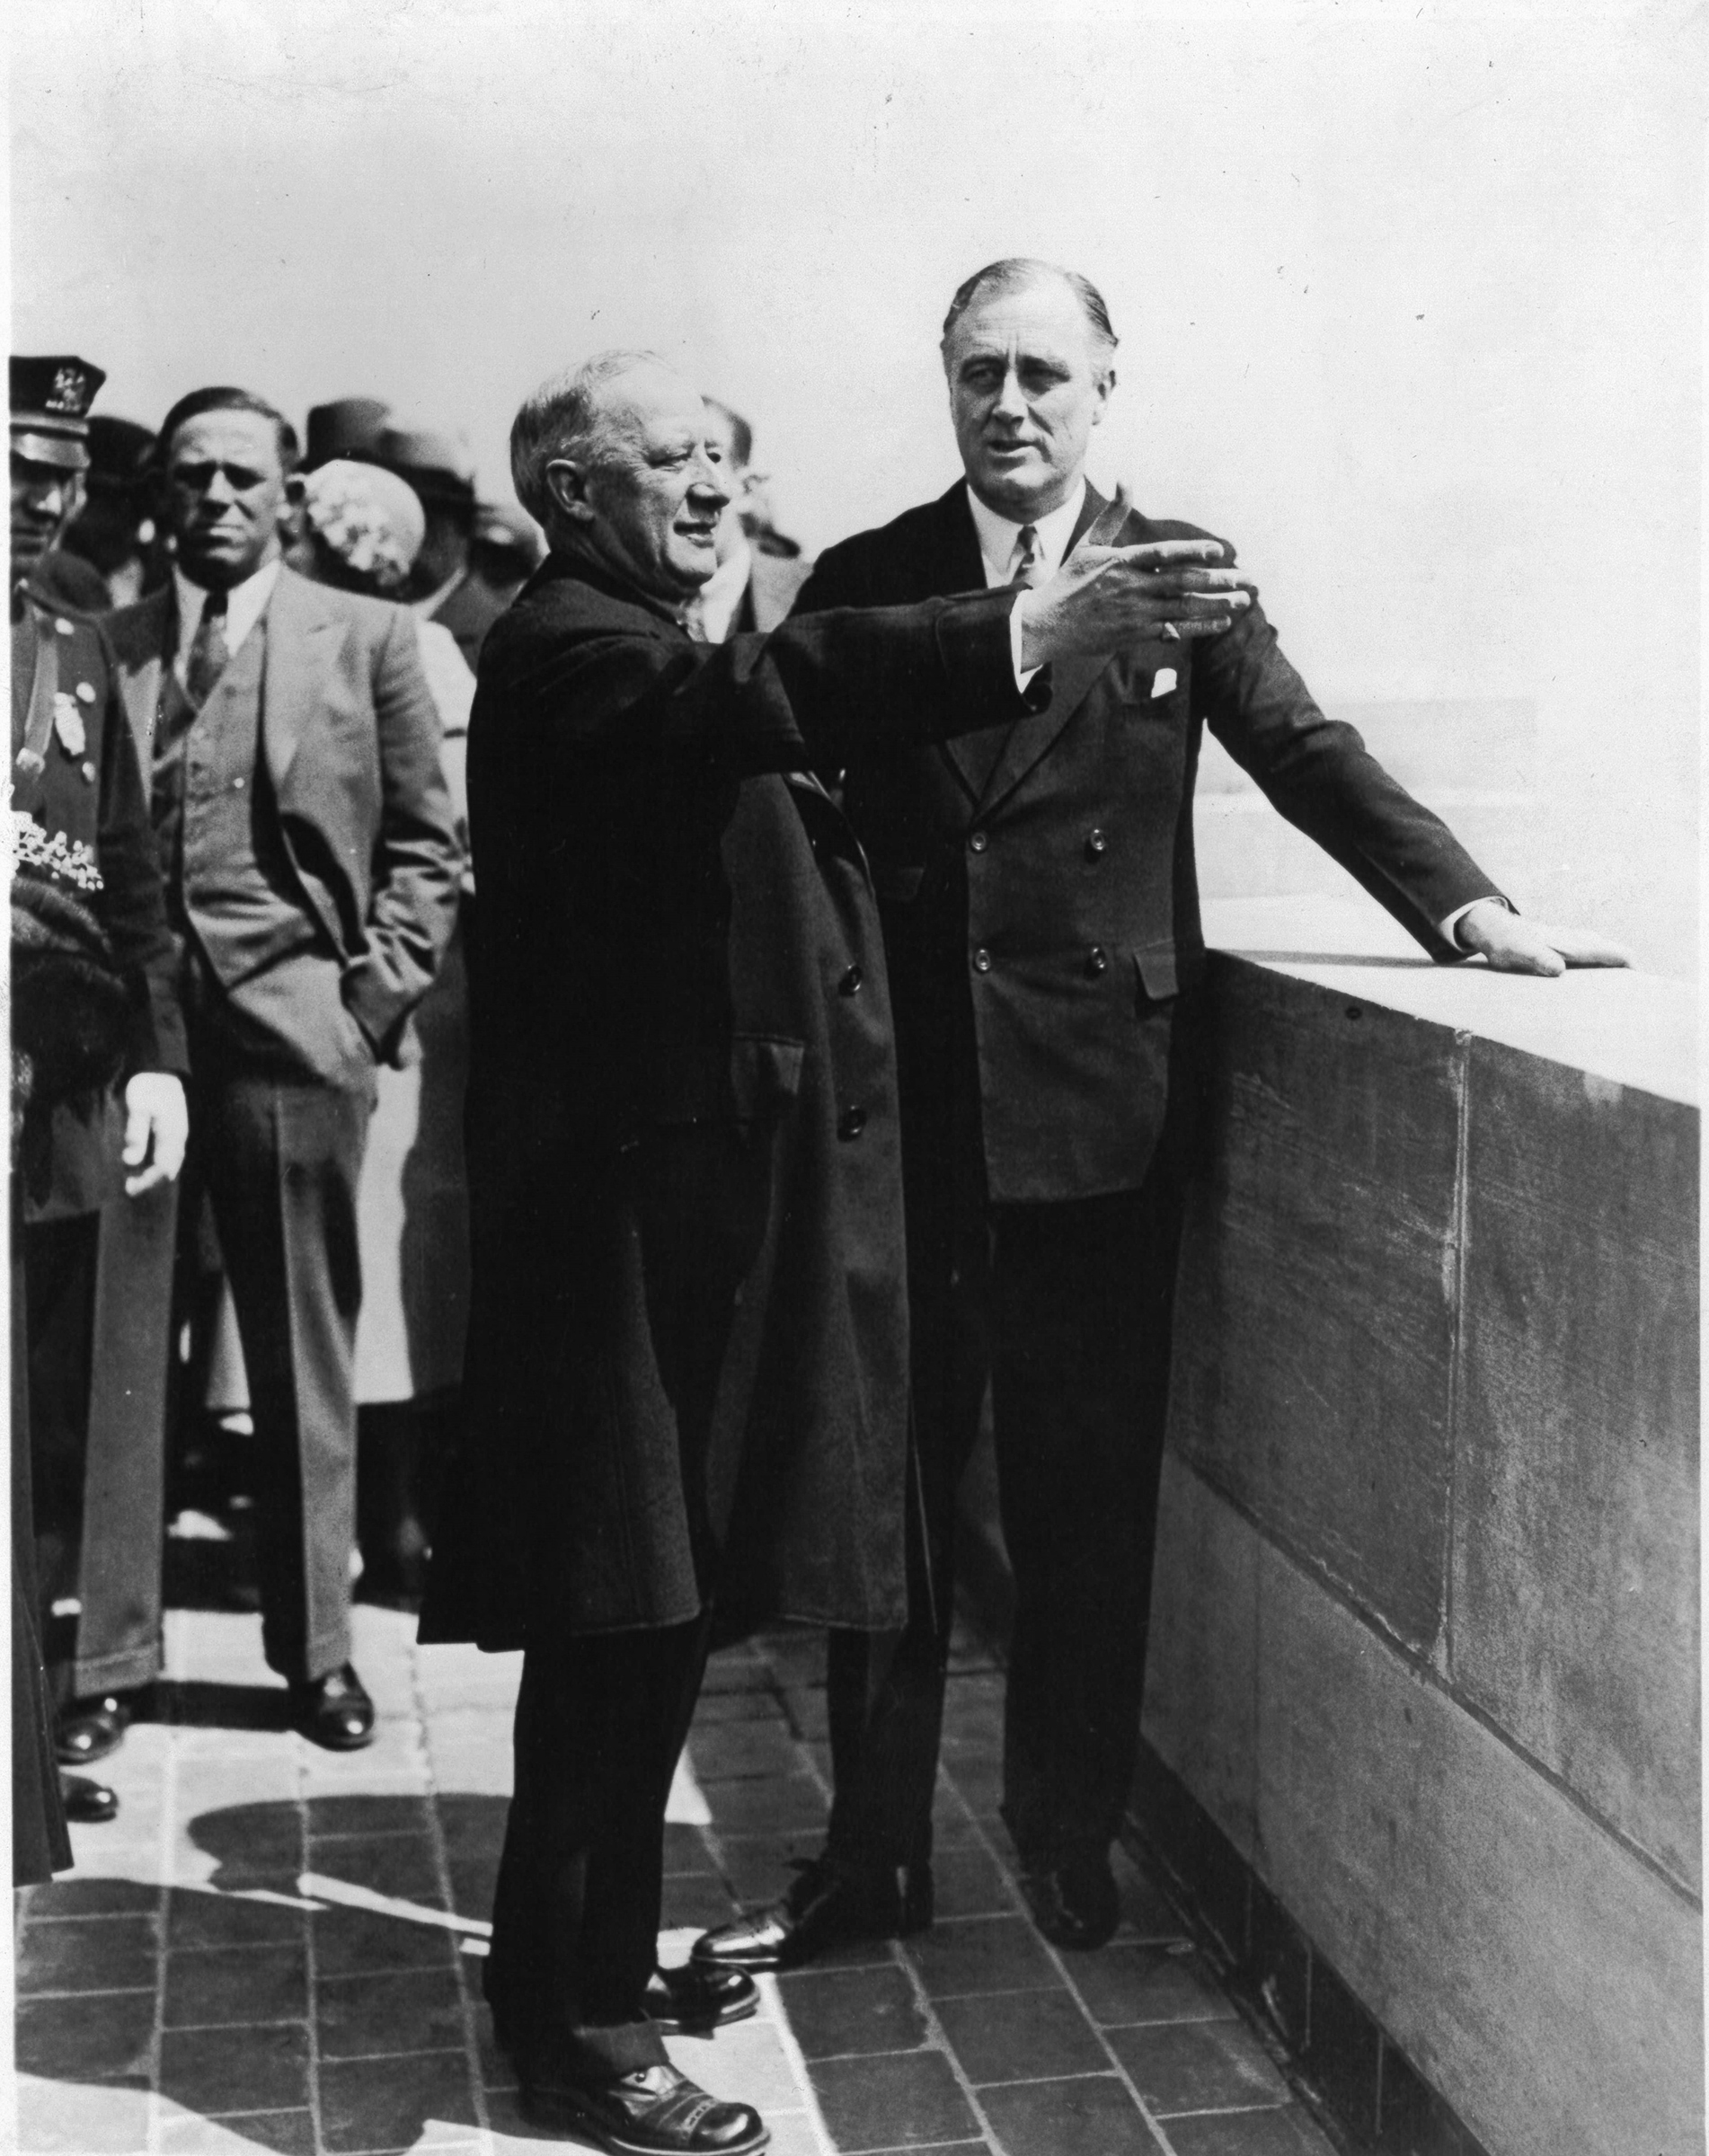 Former Governor Alfred E. Smith points out the sights of the city to Governor Roosevelt from an Empire State Building observation floor on May 1, 1931.